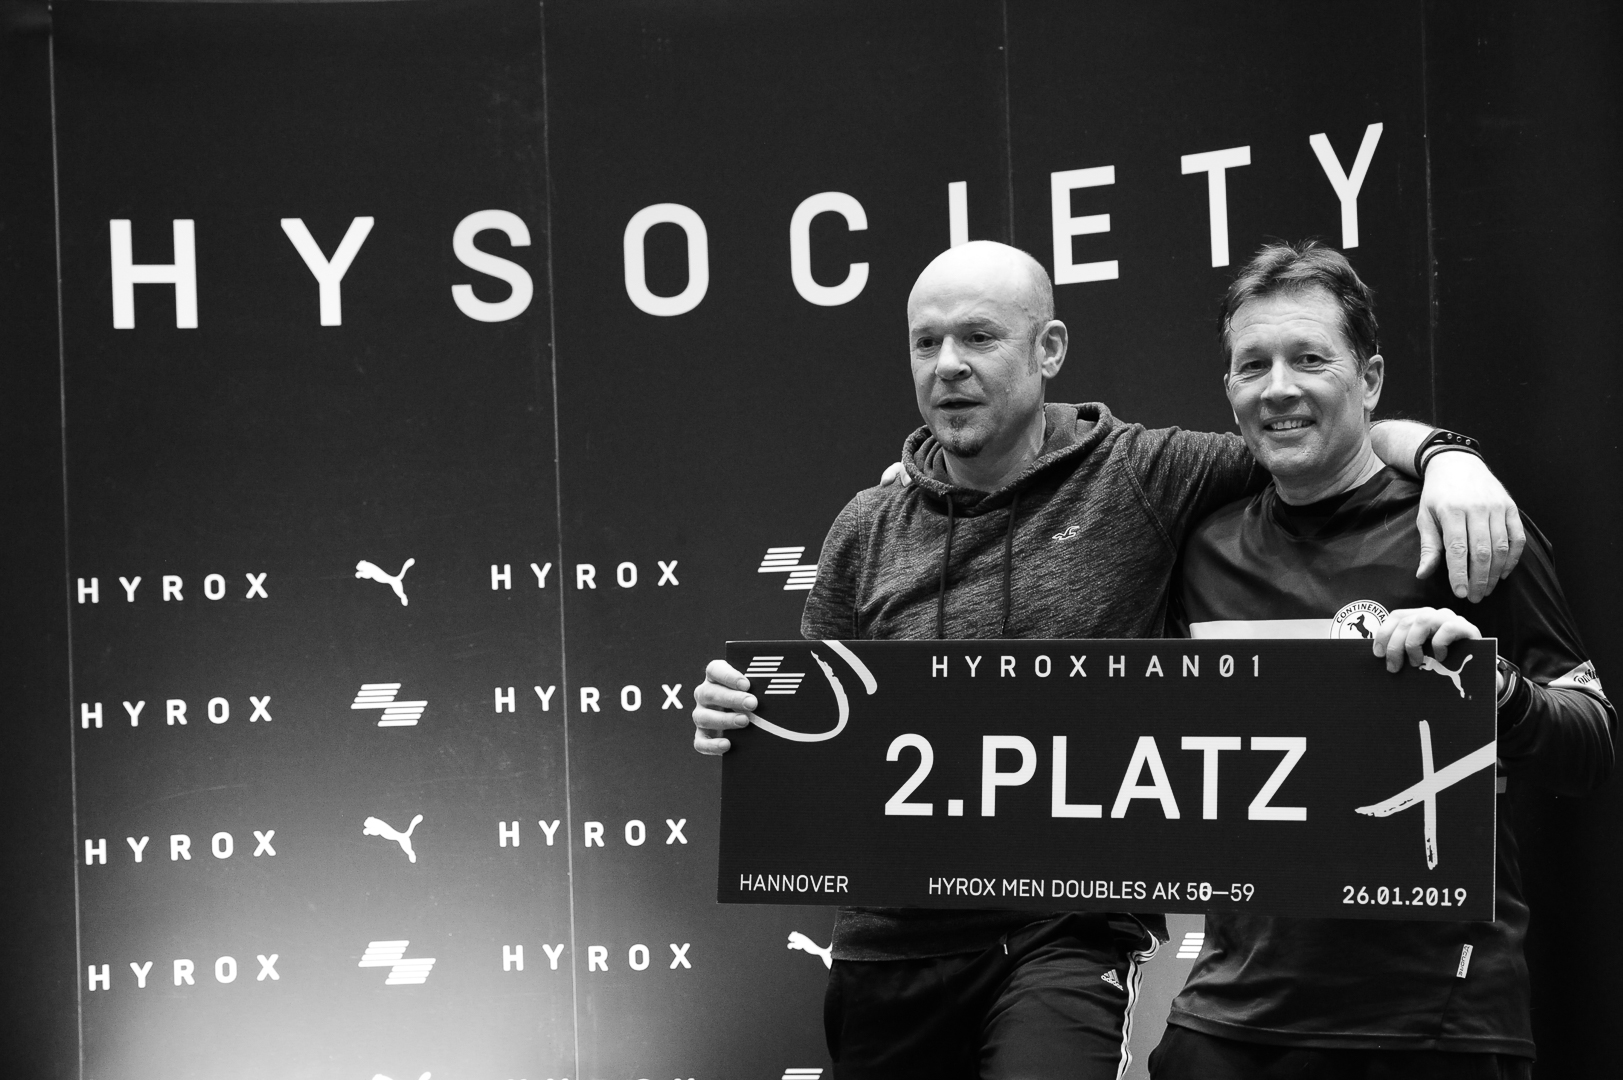 HYROX HAN01 - 26. Januar 2019 (credit: Reinhard Breitenstein Sports Photography)